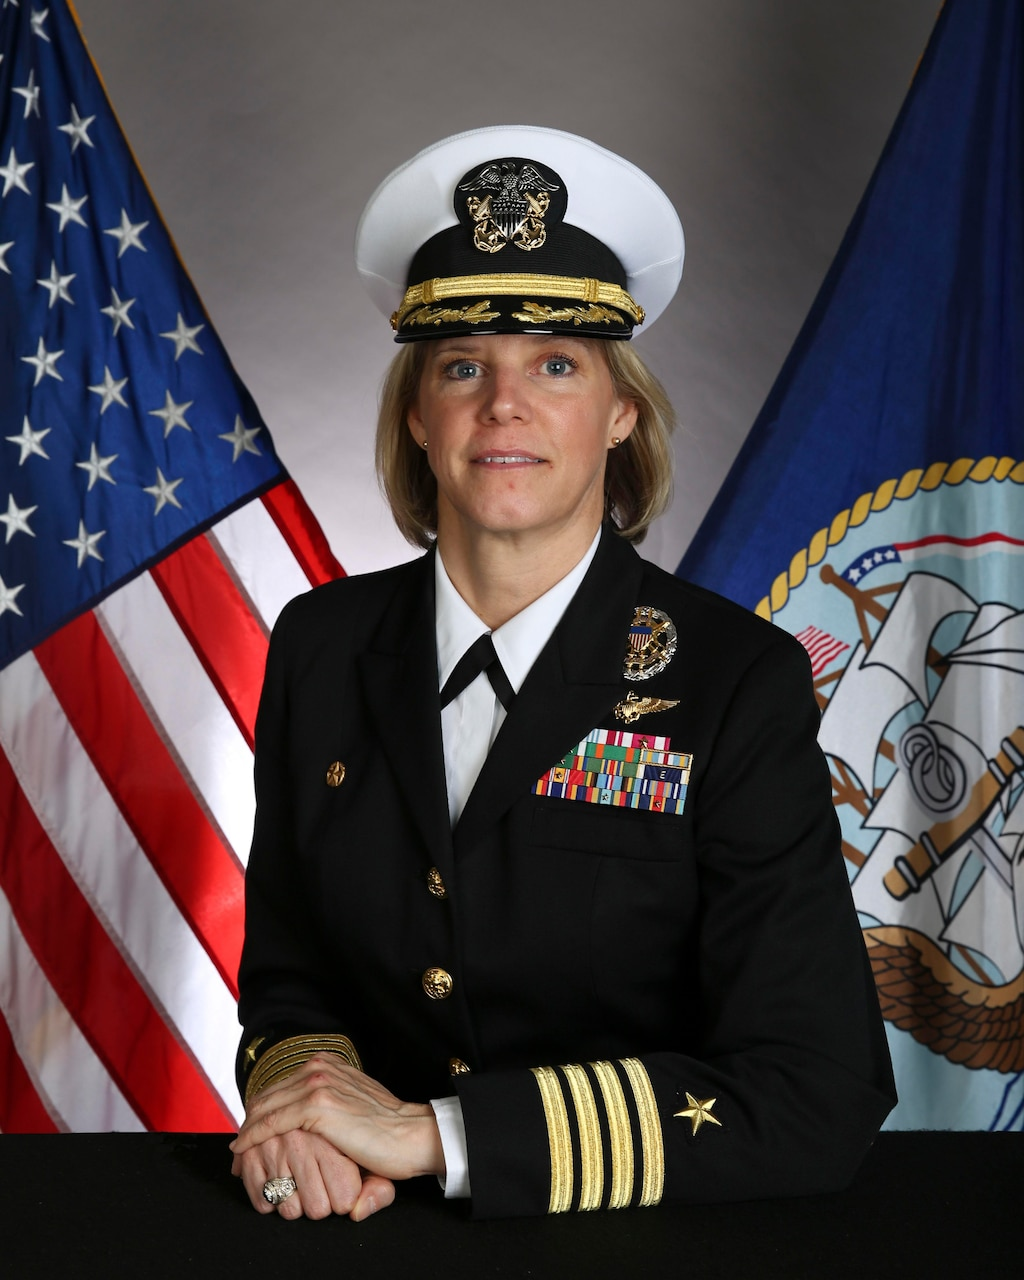 Official biography photo of Capt. Amy N. Bauernschmidt, commanding officer, USS San Diego (LPD 22).